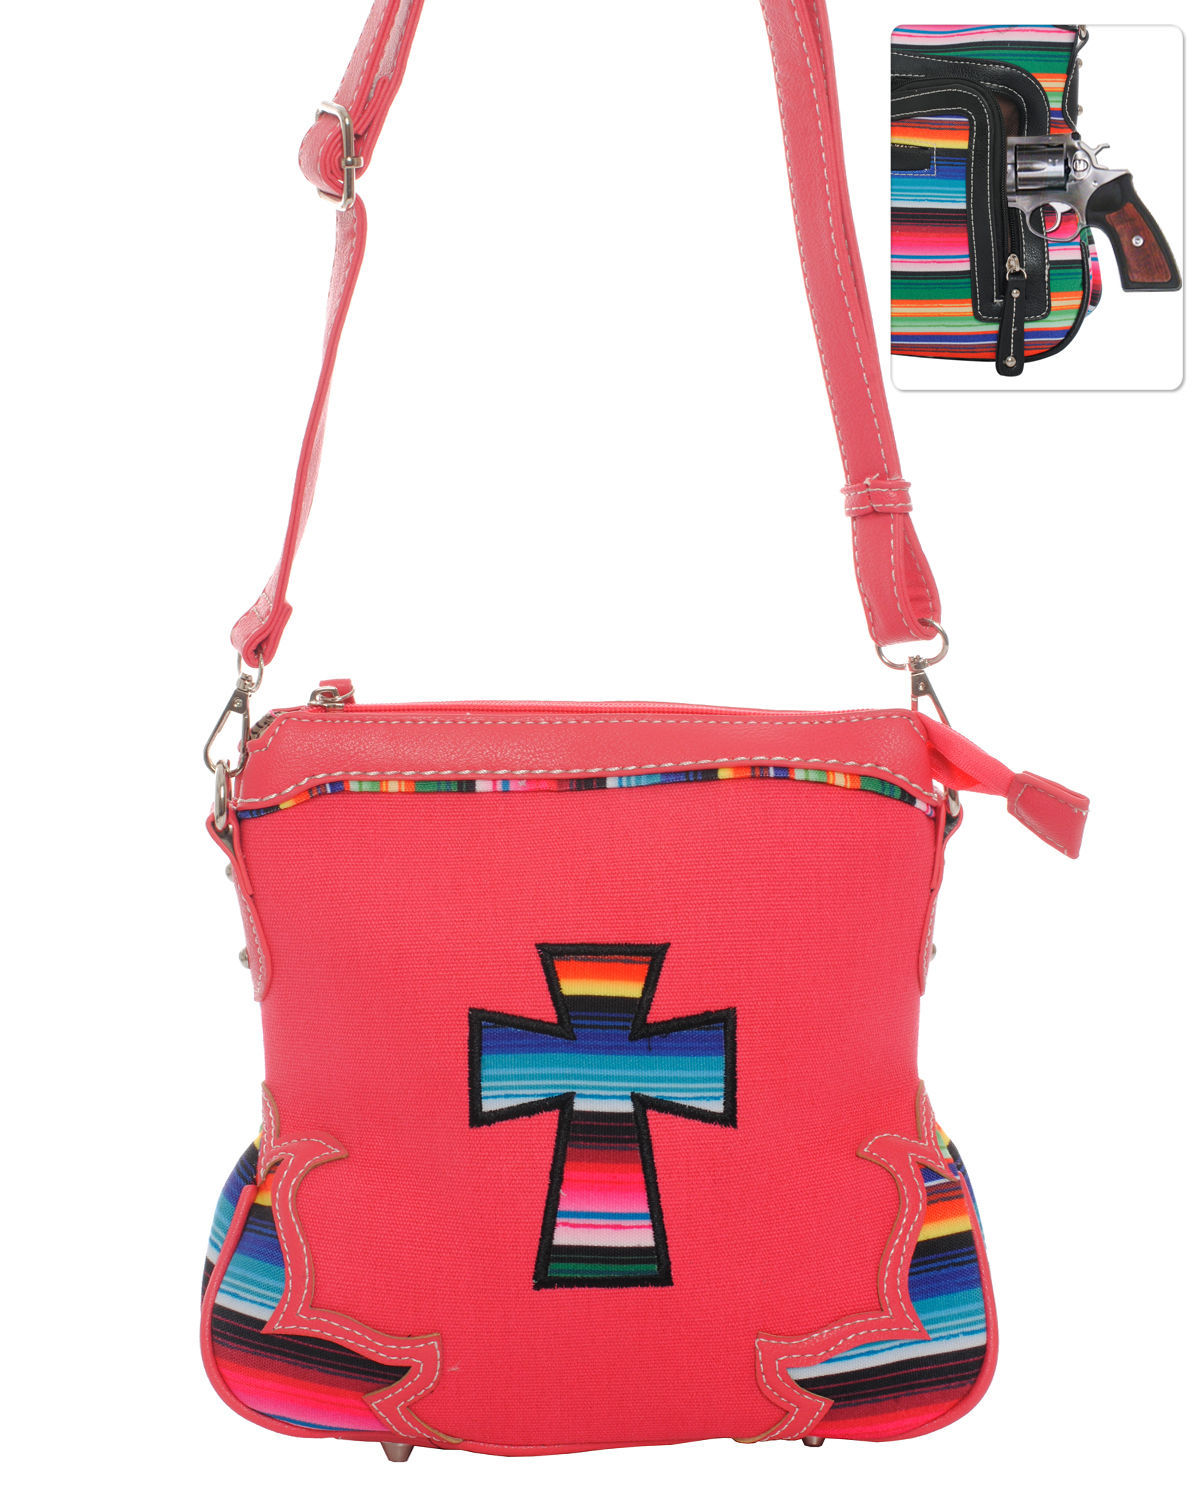 Serape Striped Messenger Bag Cross Body Purse Coral Concealed Carry Gun Pocket